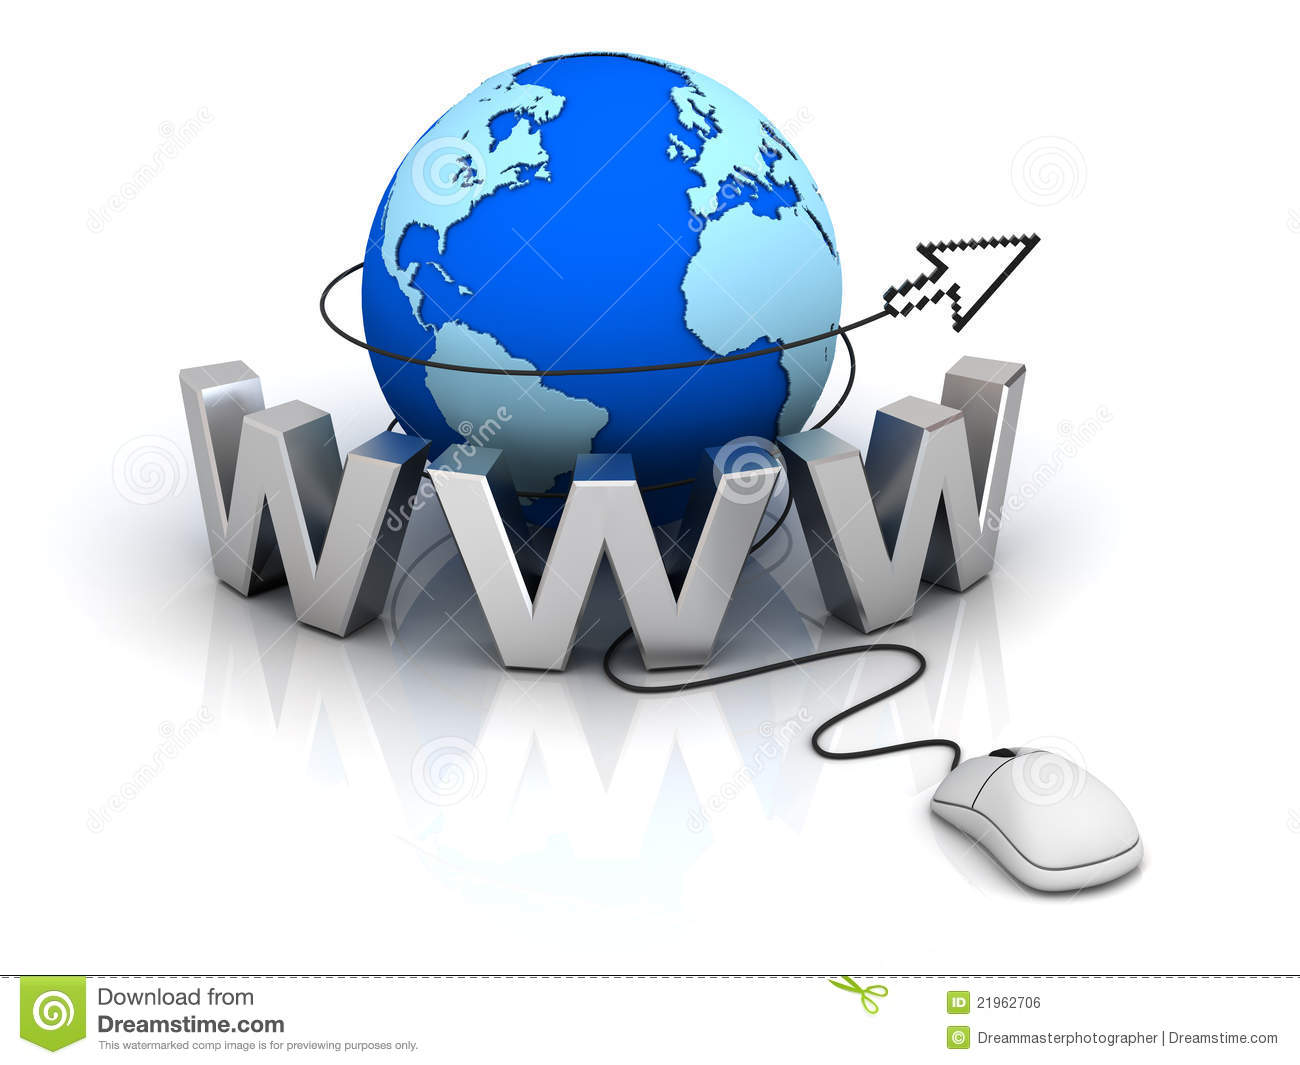 World wide web clipart 2 » Clipart Station.